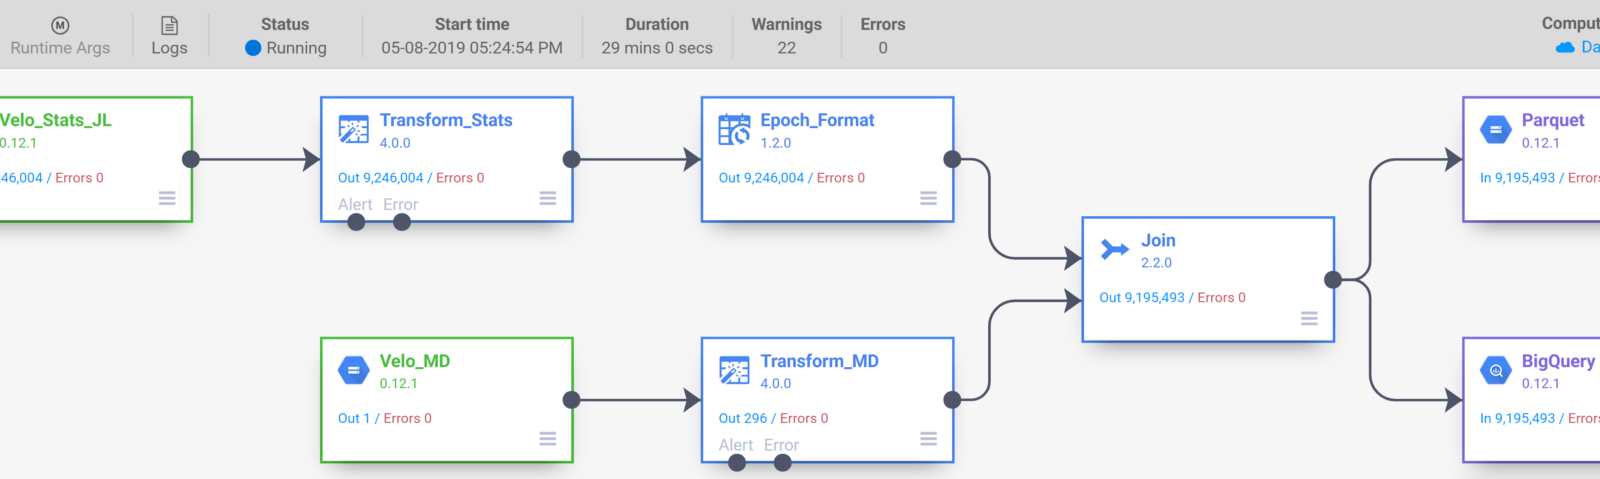 Utilizing Google Cloud Data Fusion to support Data Engineering at ML6